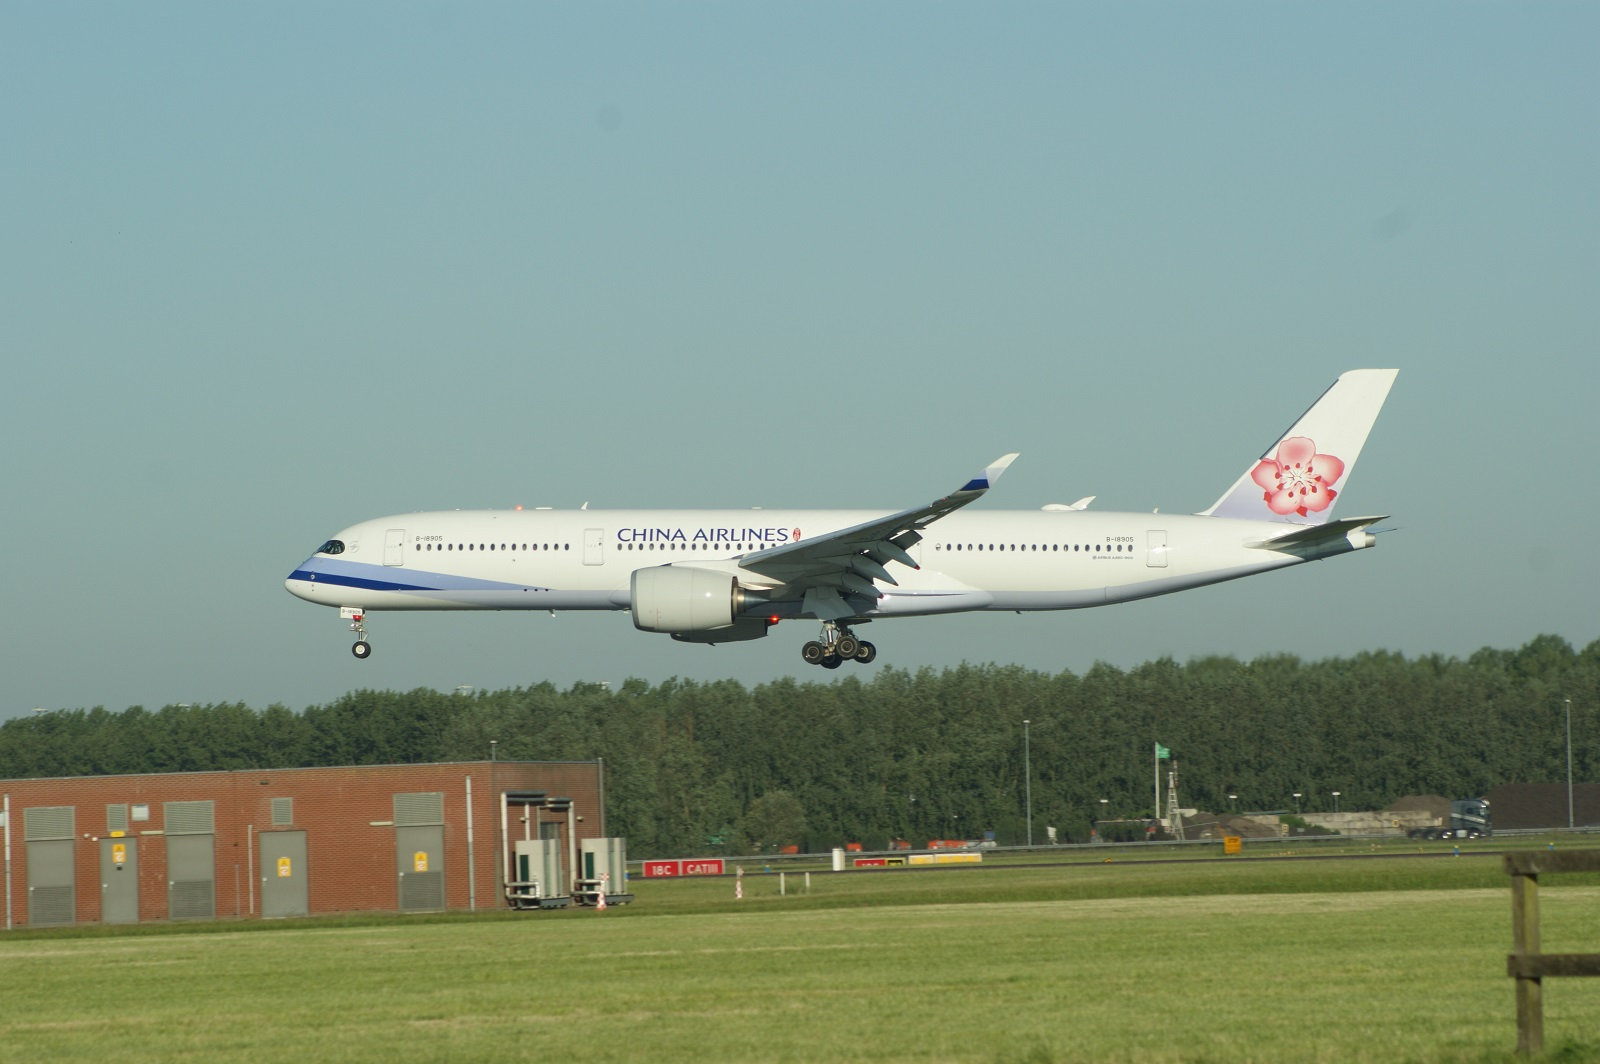 Airbus A350-941 B-18905 China Airlines